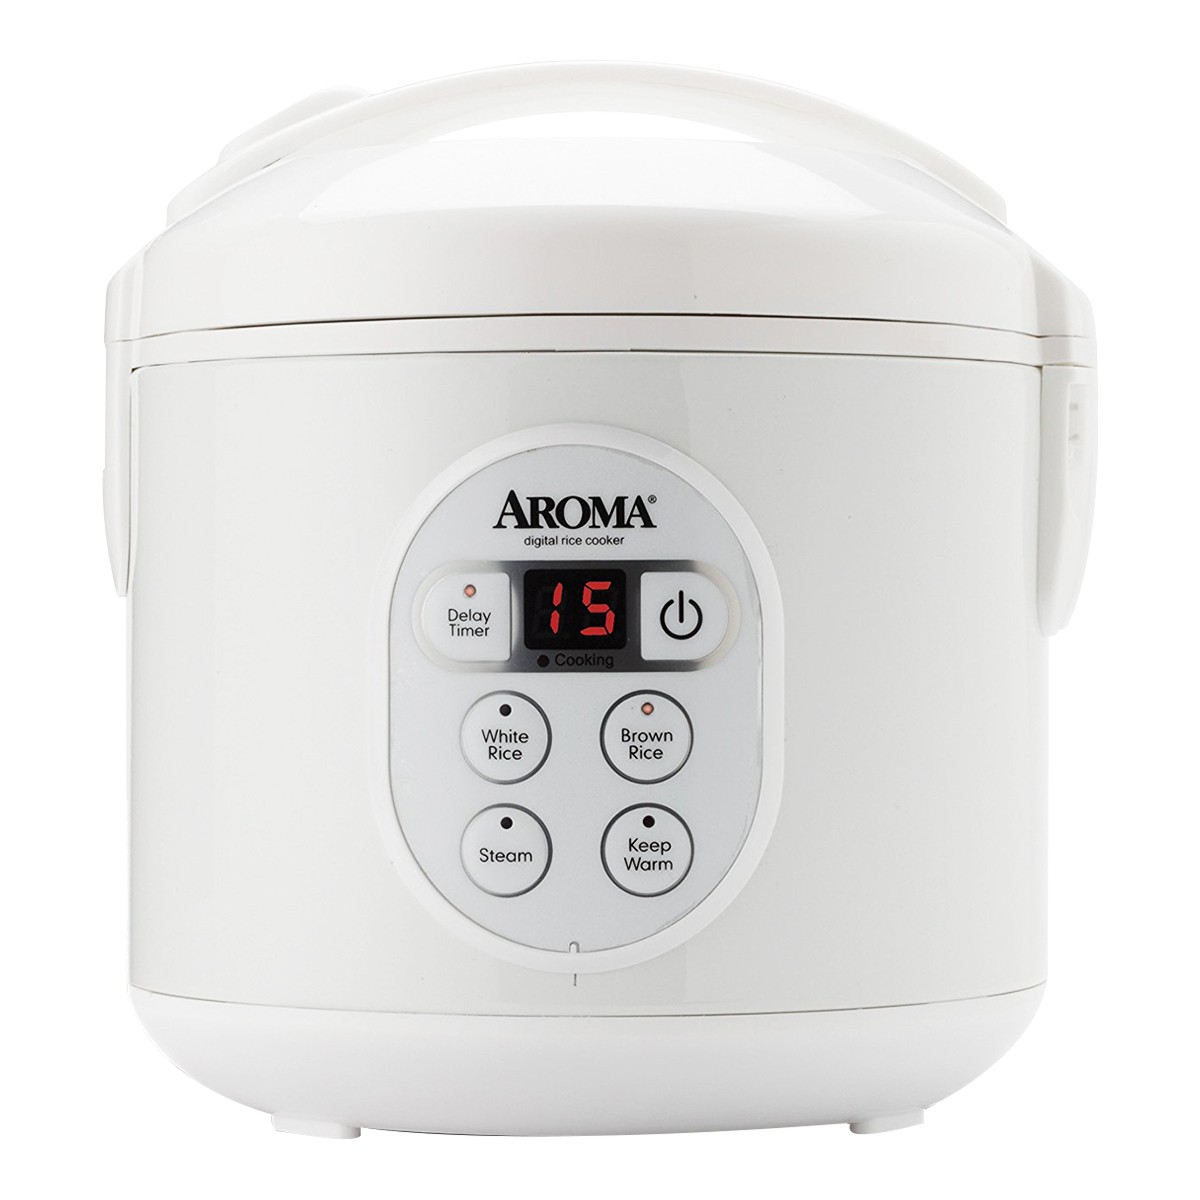 Yamibuy.com:Customer reviews:Digital Rice Cooker and Food Steamer 8-Cup Cooked Rice ARC-914D (2 Year Manufacturer Warranty)